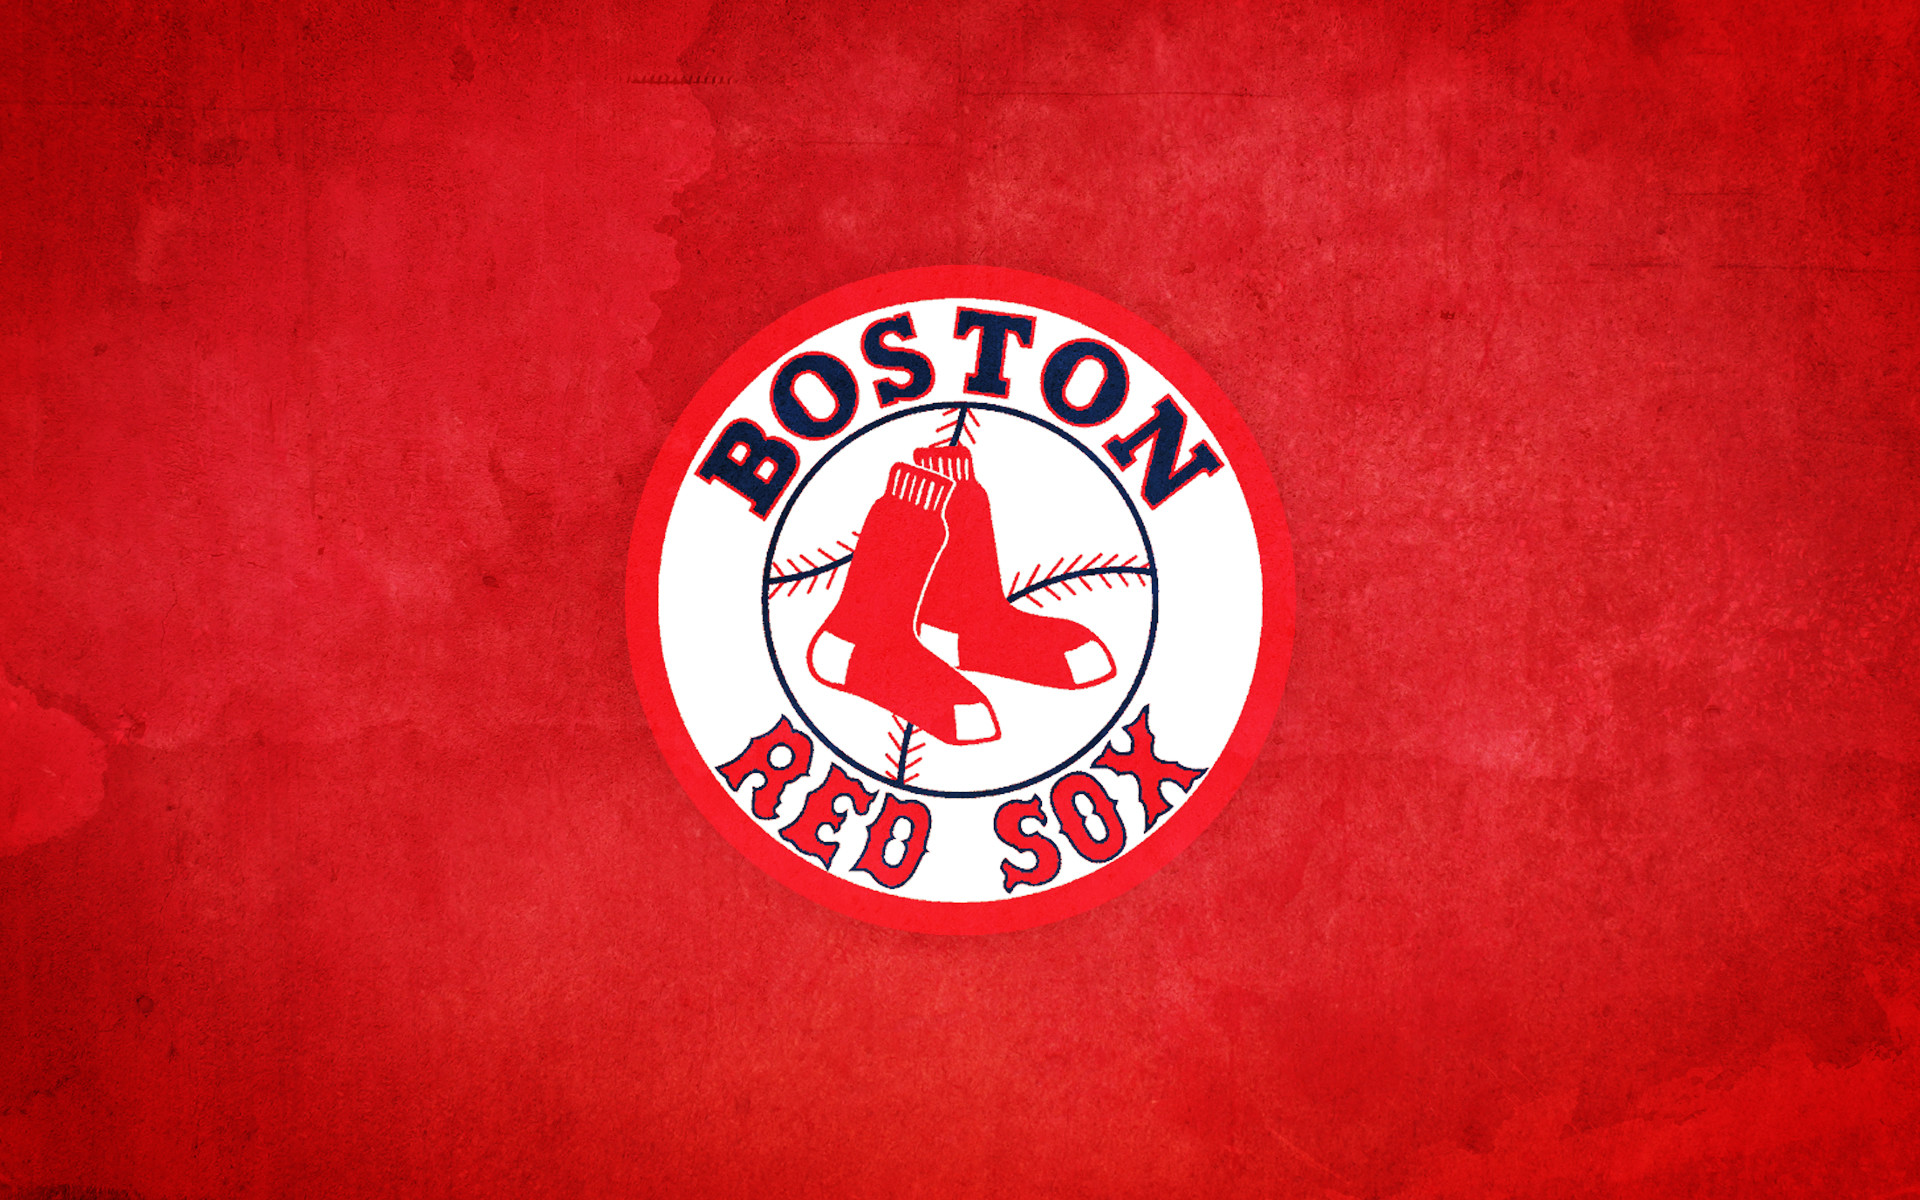 Boston Red Sox Wallpaper Screensavers 61 images 1920x1200